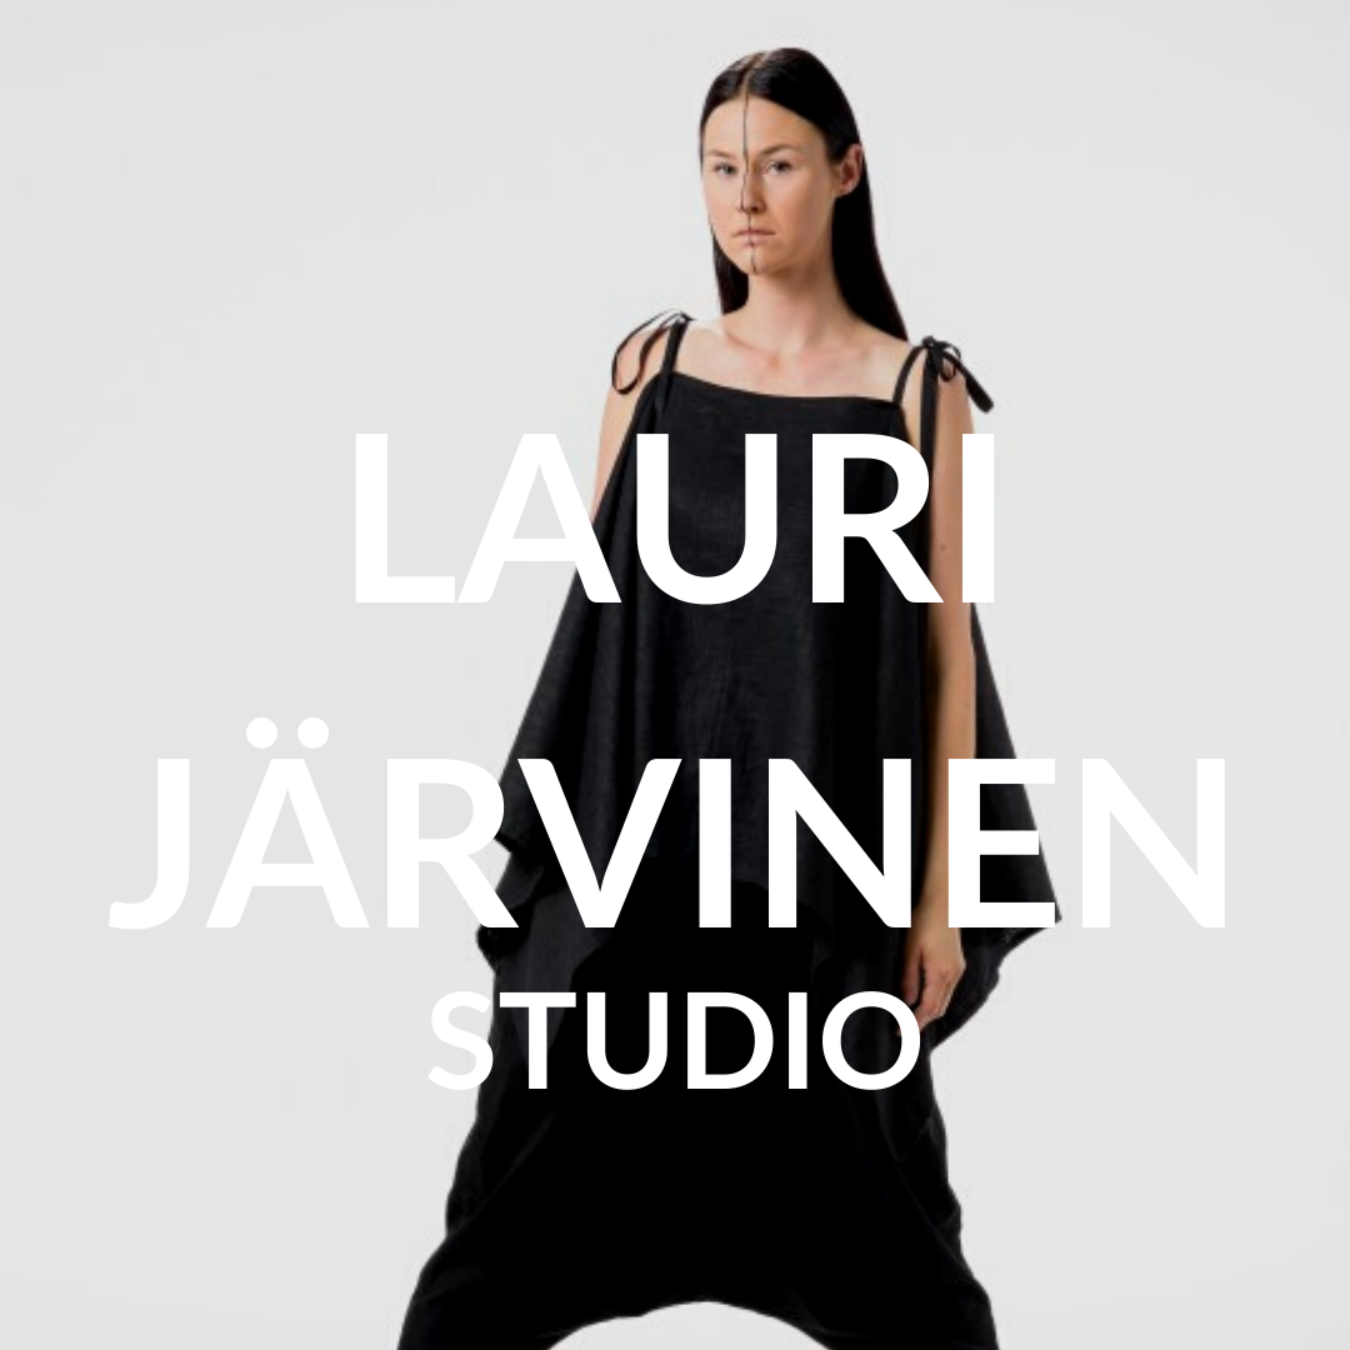 LAURIJARVINENSTUDIO